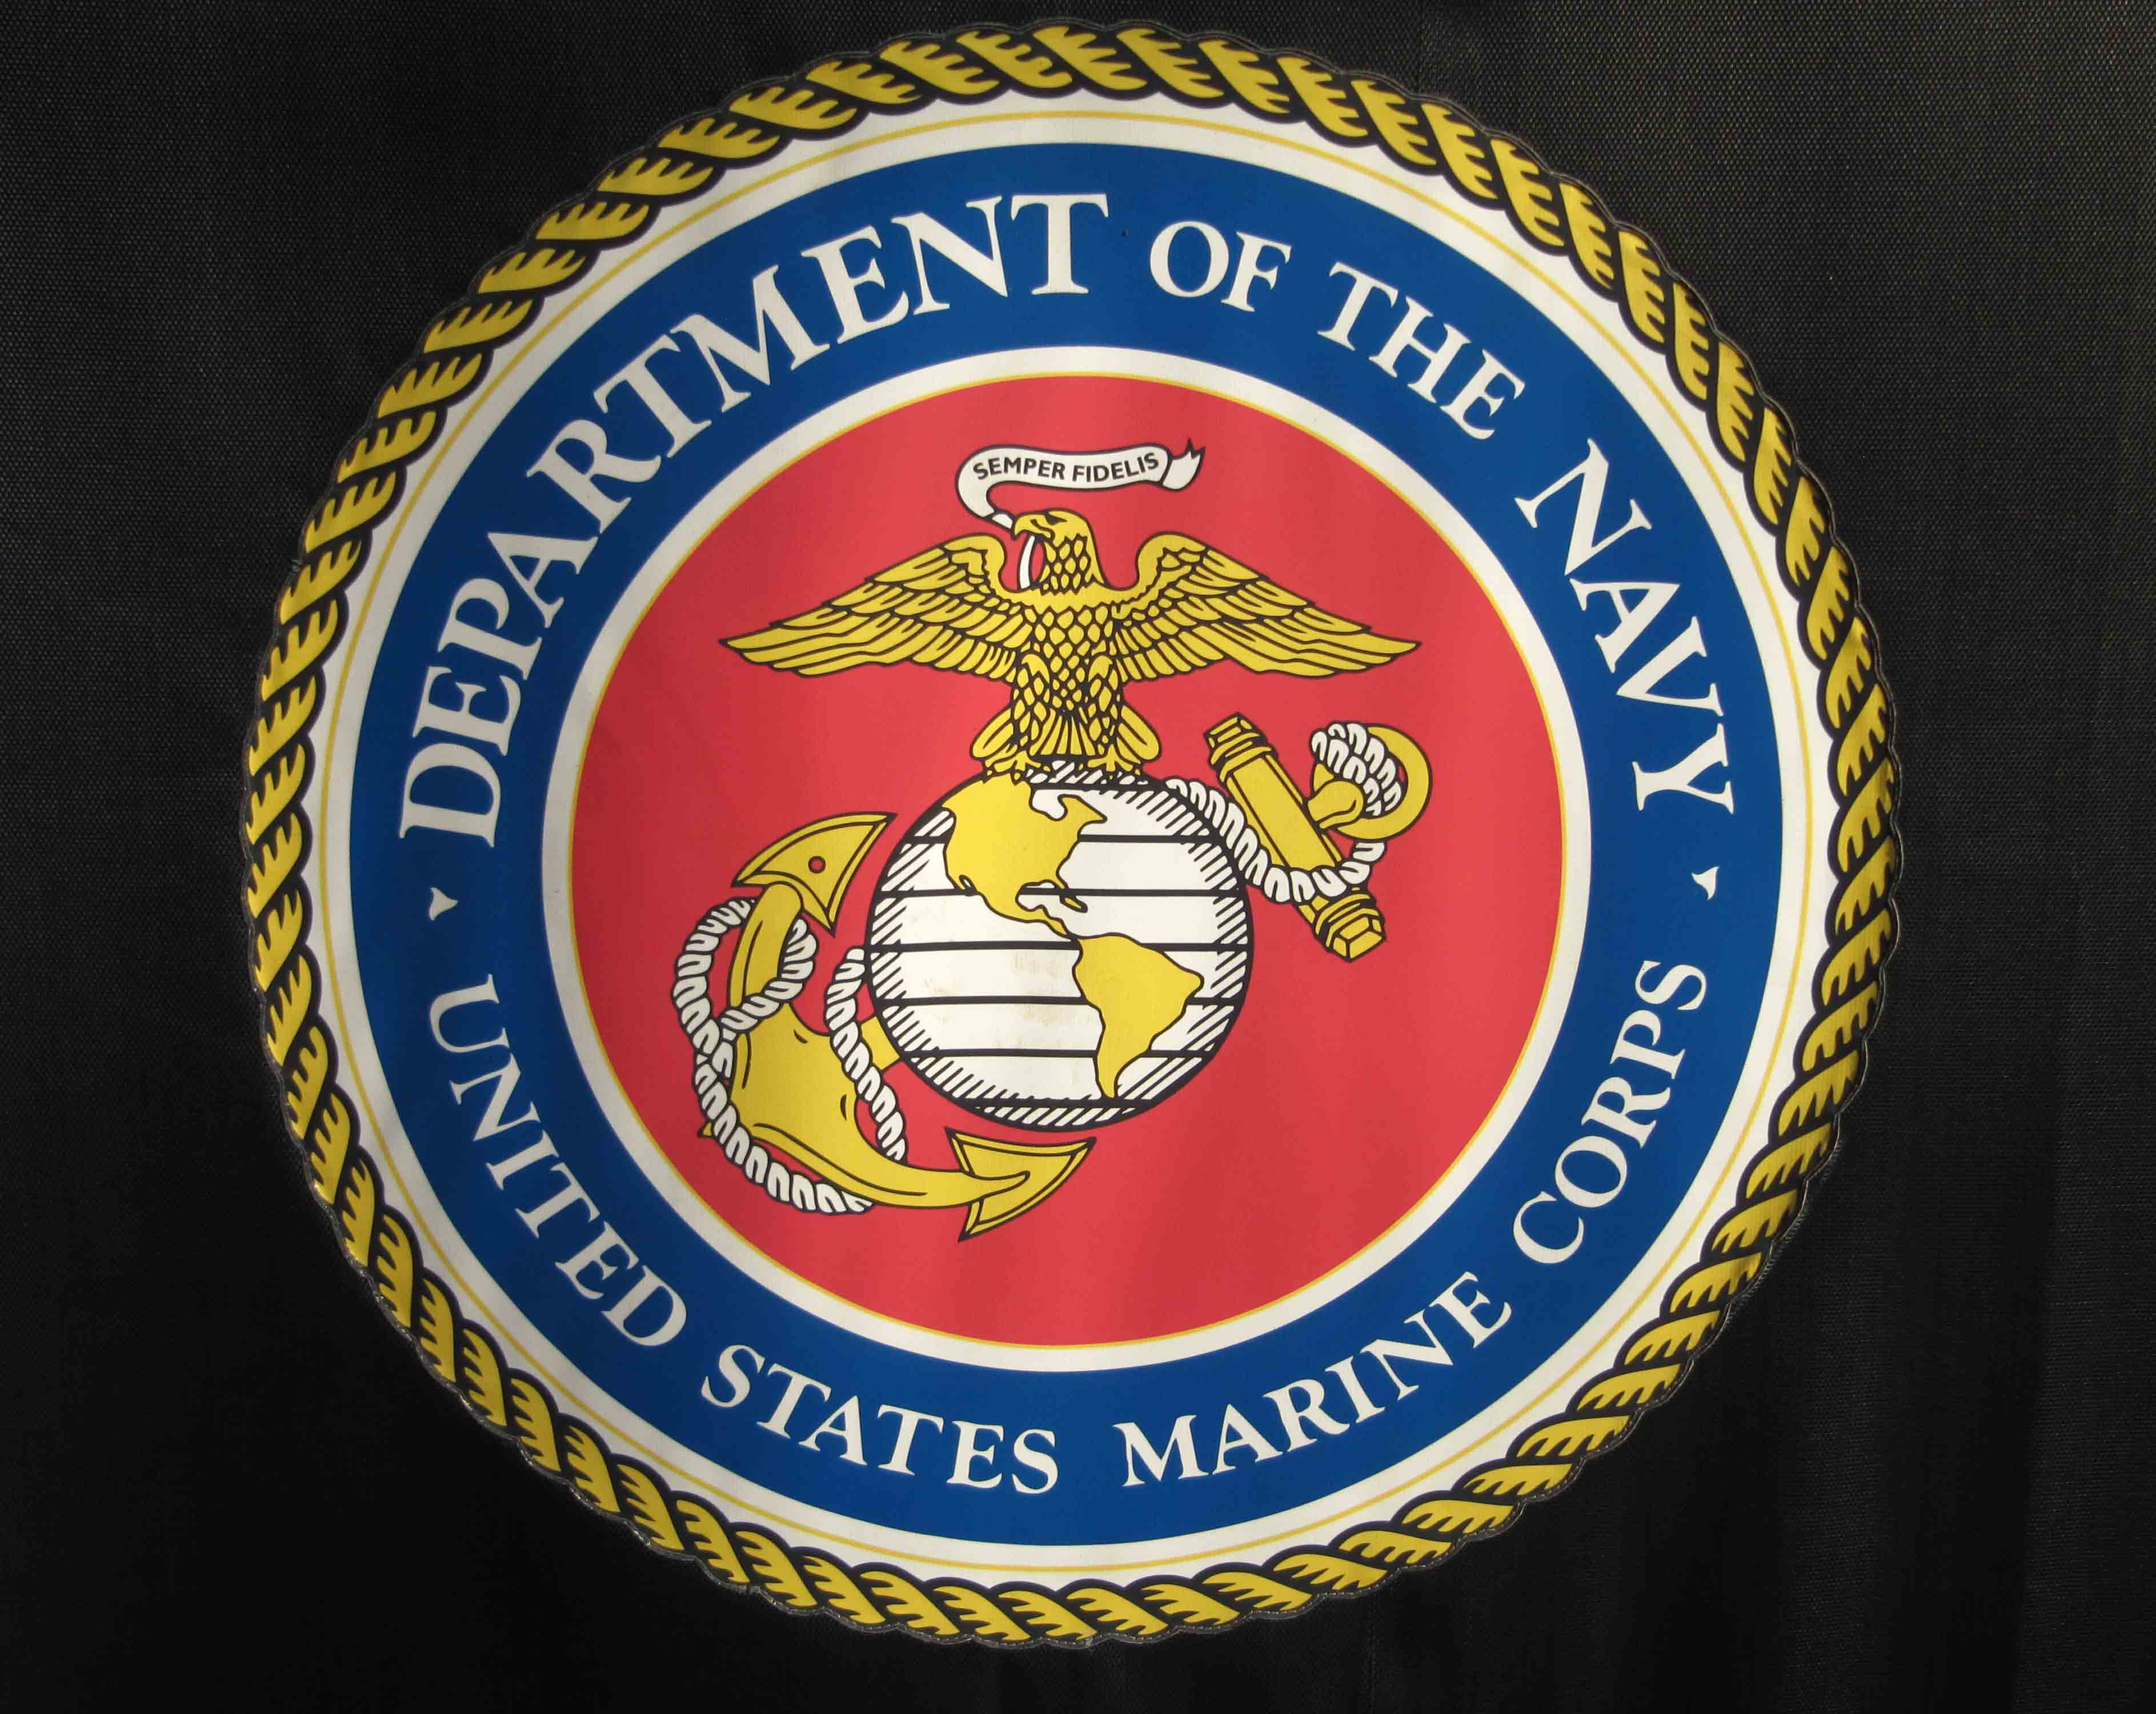 Navy Exchange Buy Navy And Marine Corps Uniforms Online